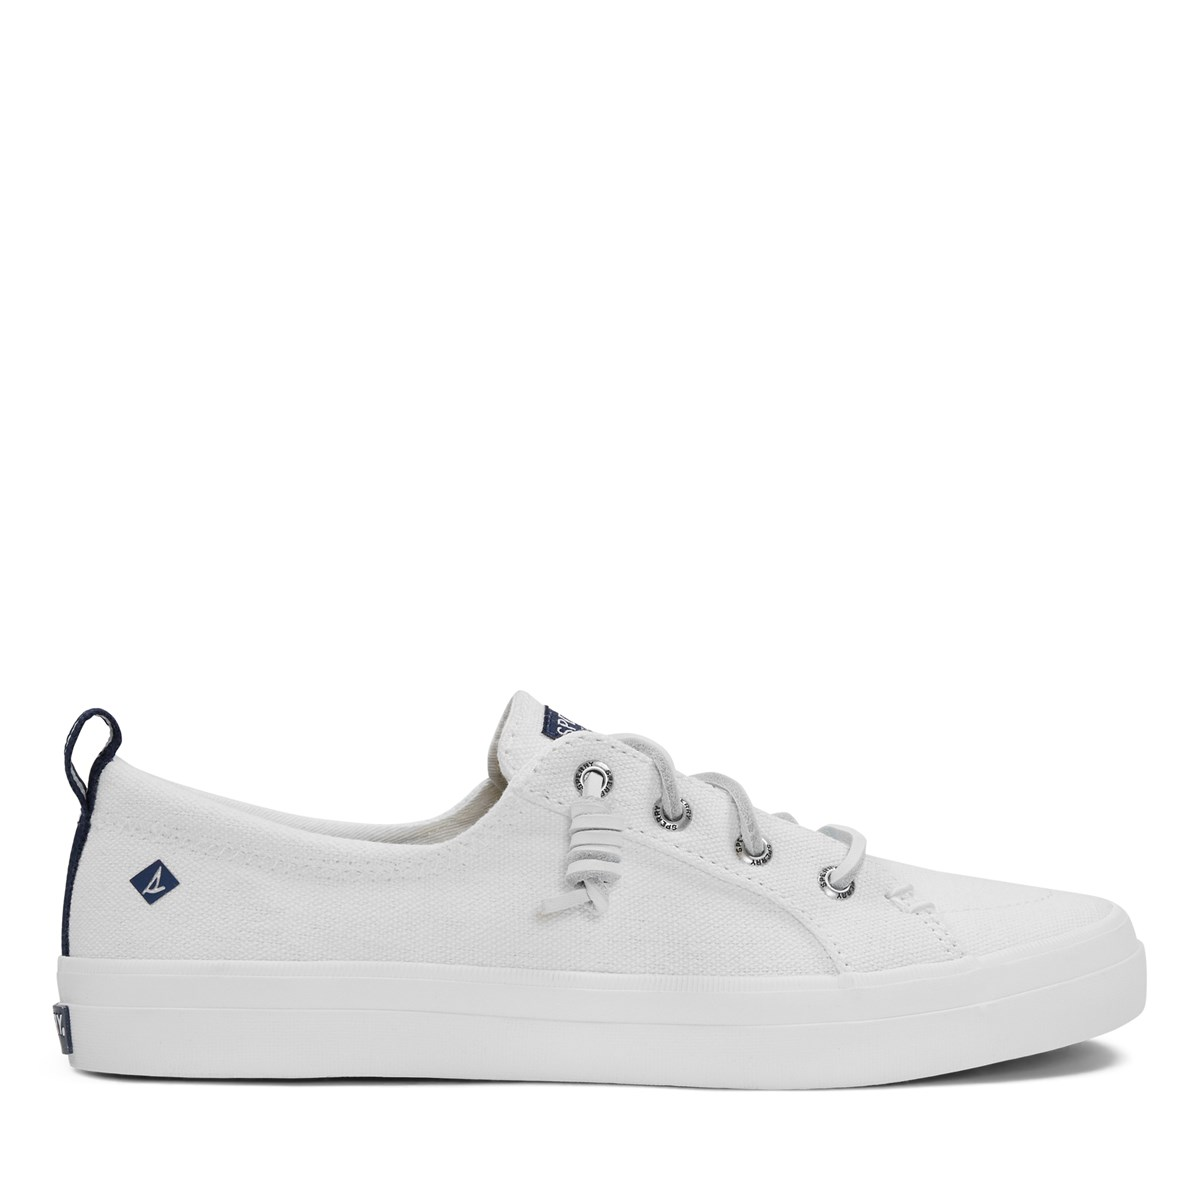 Woman's Crest Vibe Sneakers in White